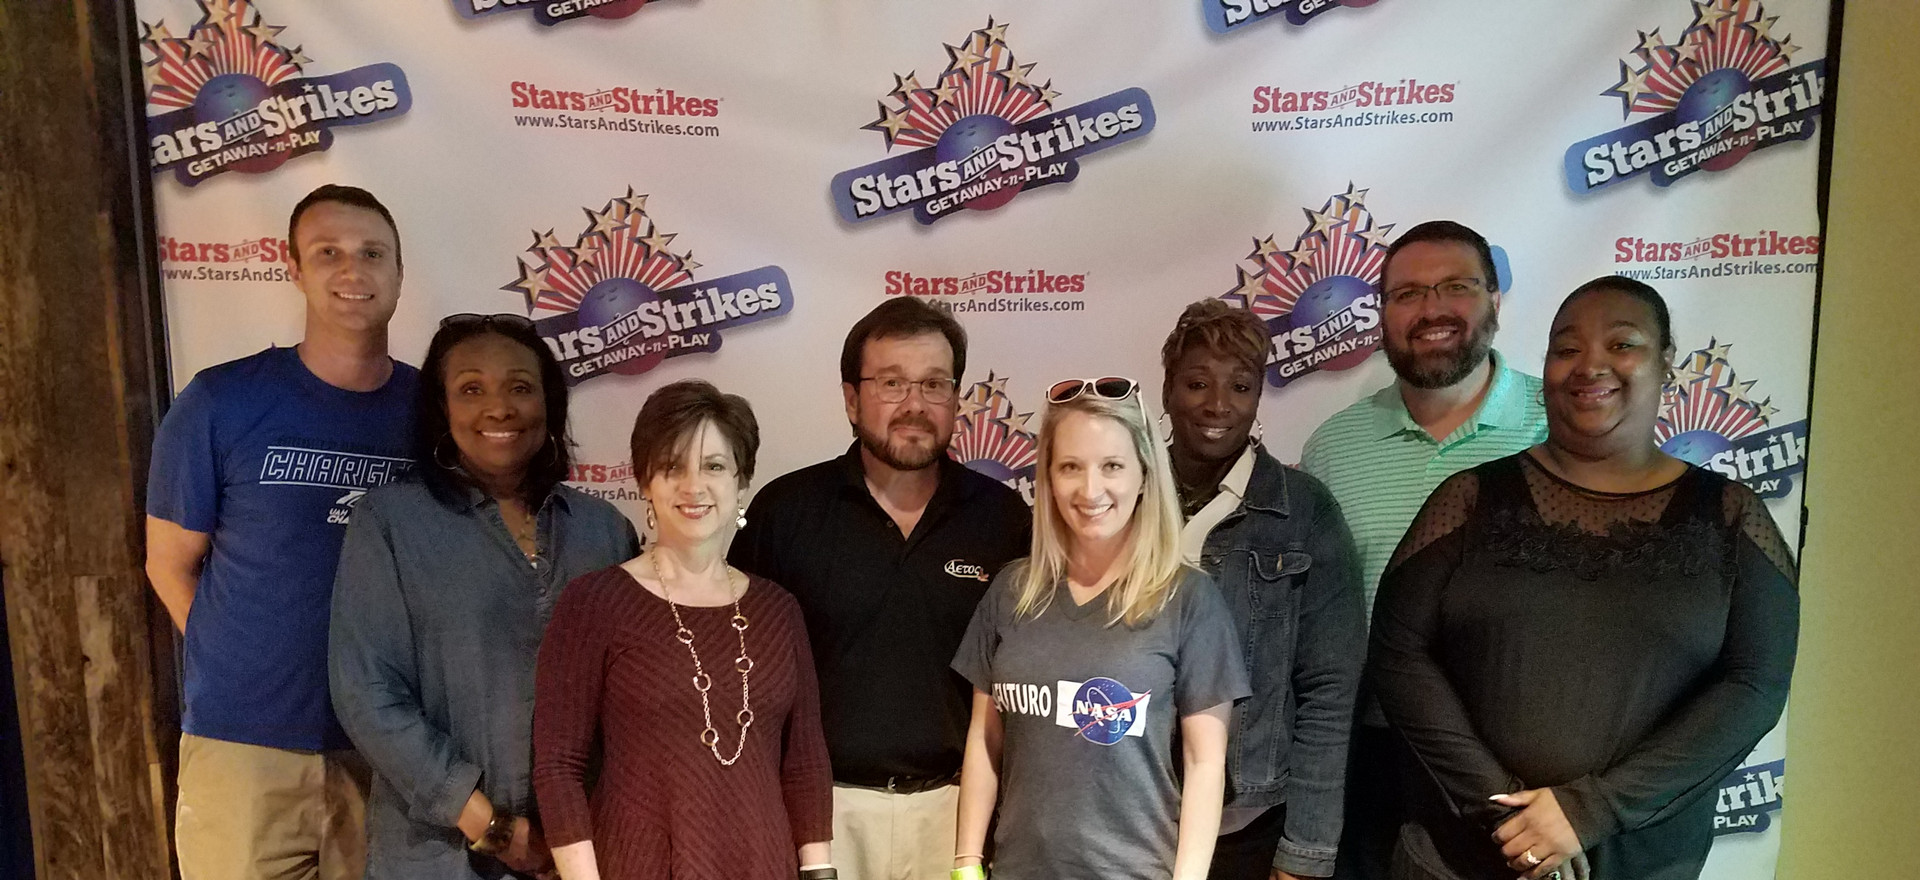 OHC at Stars and Strikes